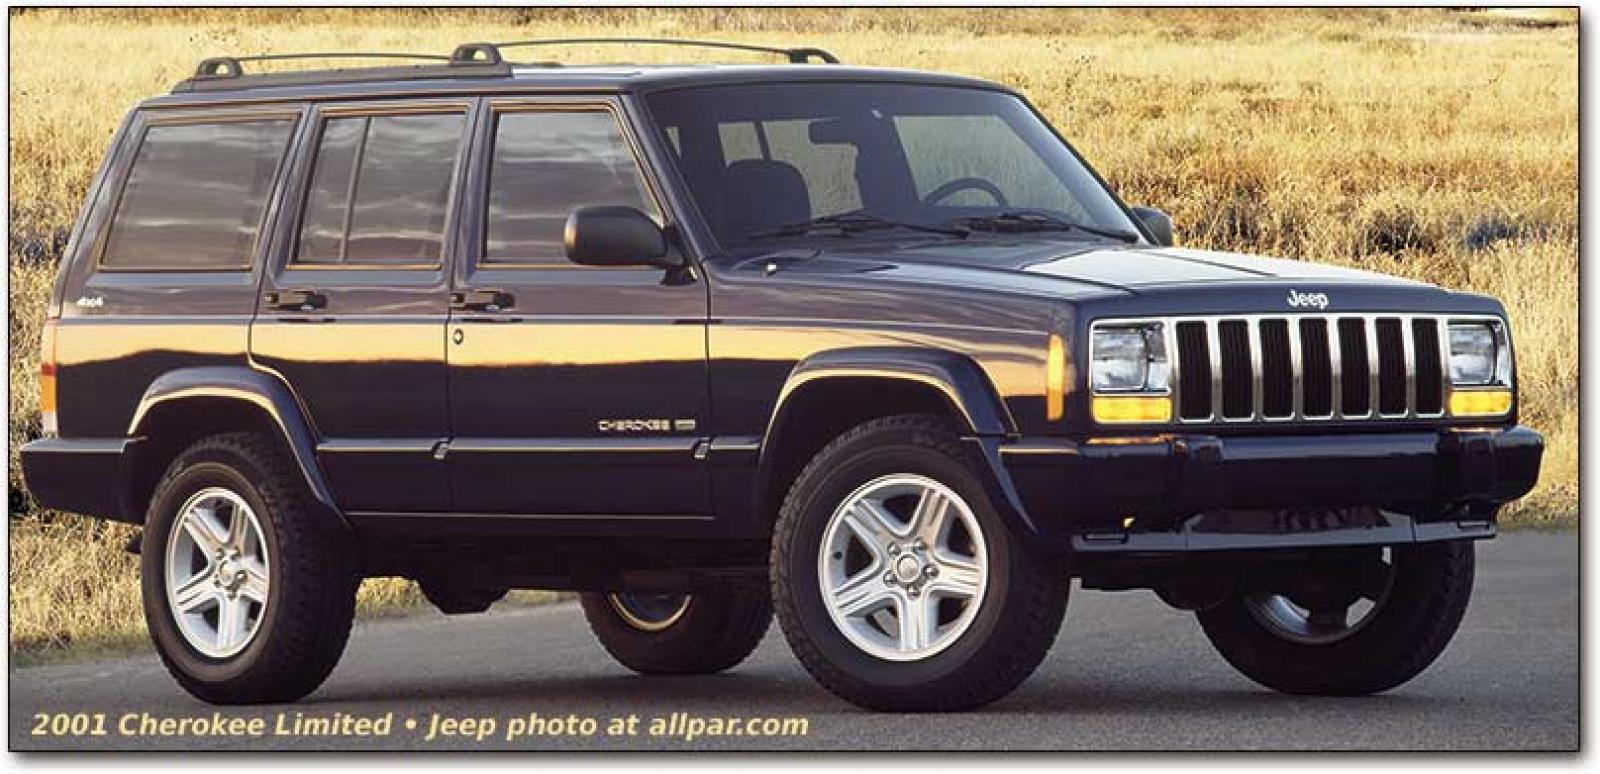 1997 jeep cherokee information and photos zombiedrive. Black Bedroom Furniture Sets. Home Design Ideas